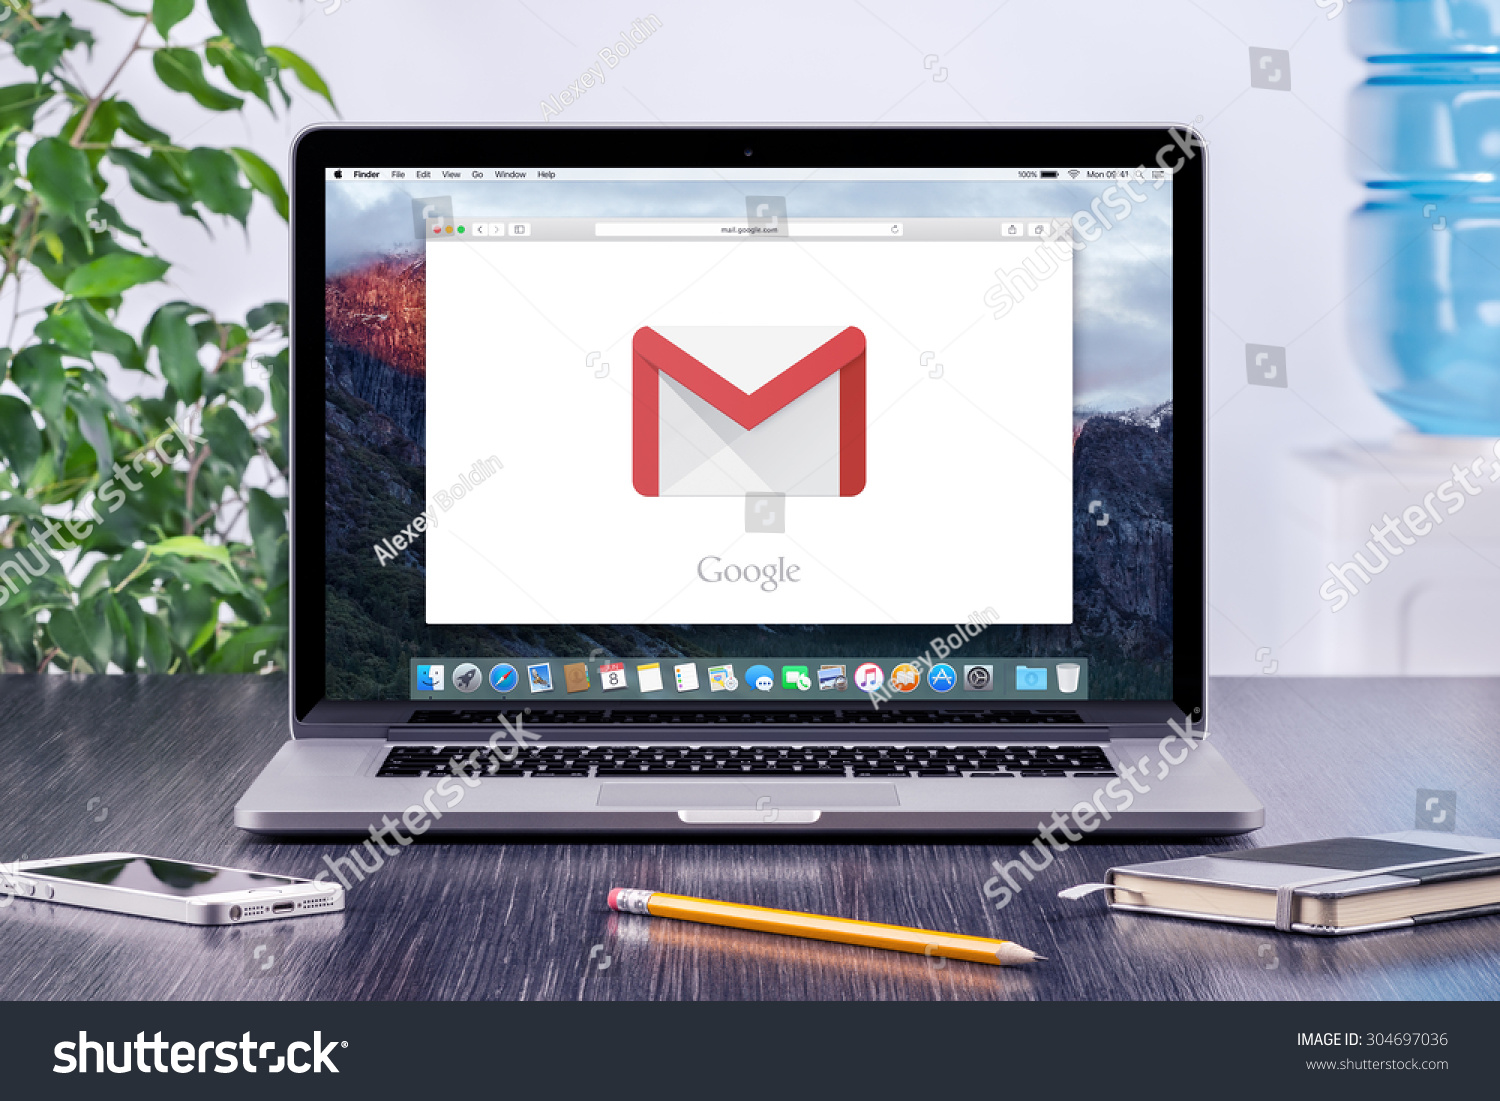 Google Gmail Logo On The Apple Macbook Pro Display That Is On Office Desk Workplace. Gmail Is A ...